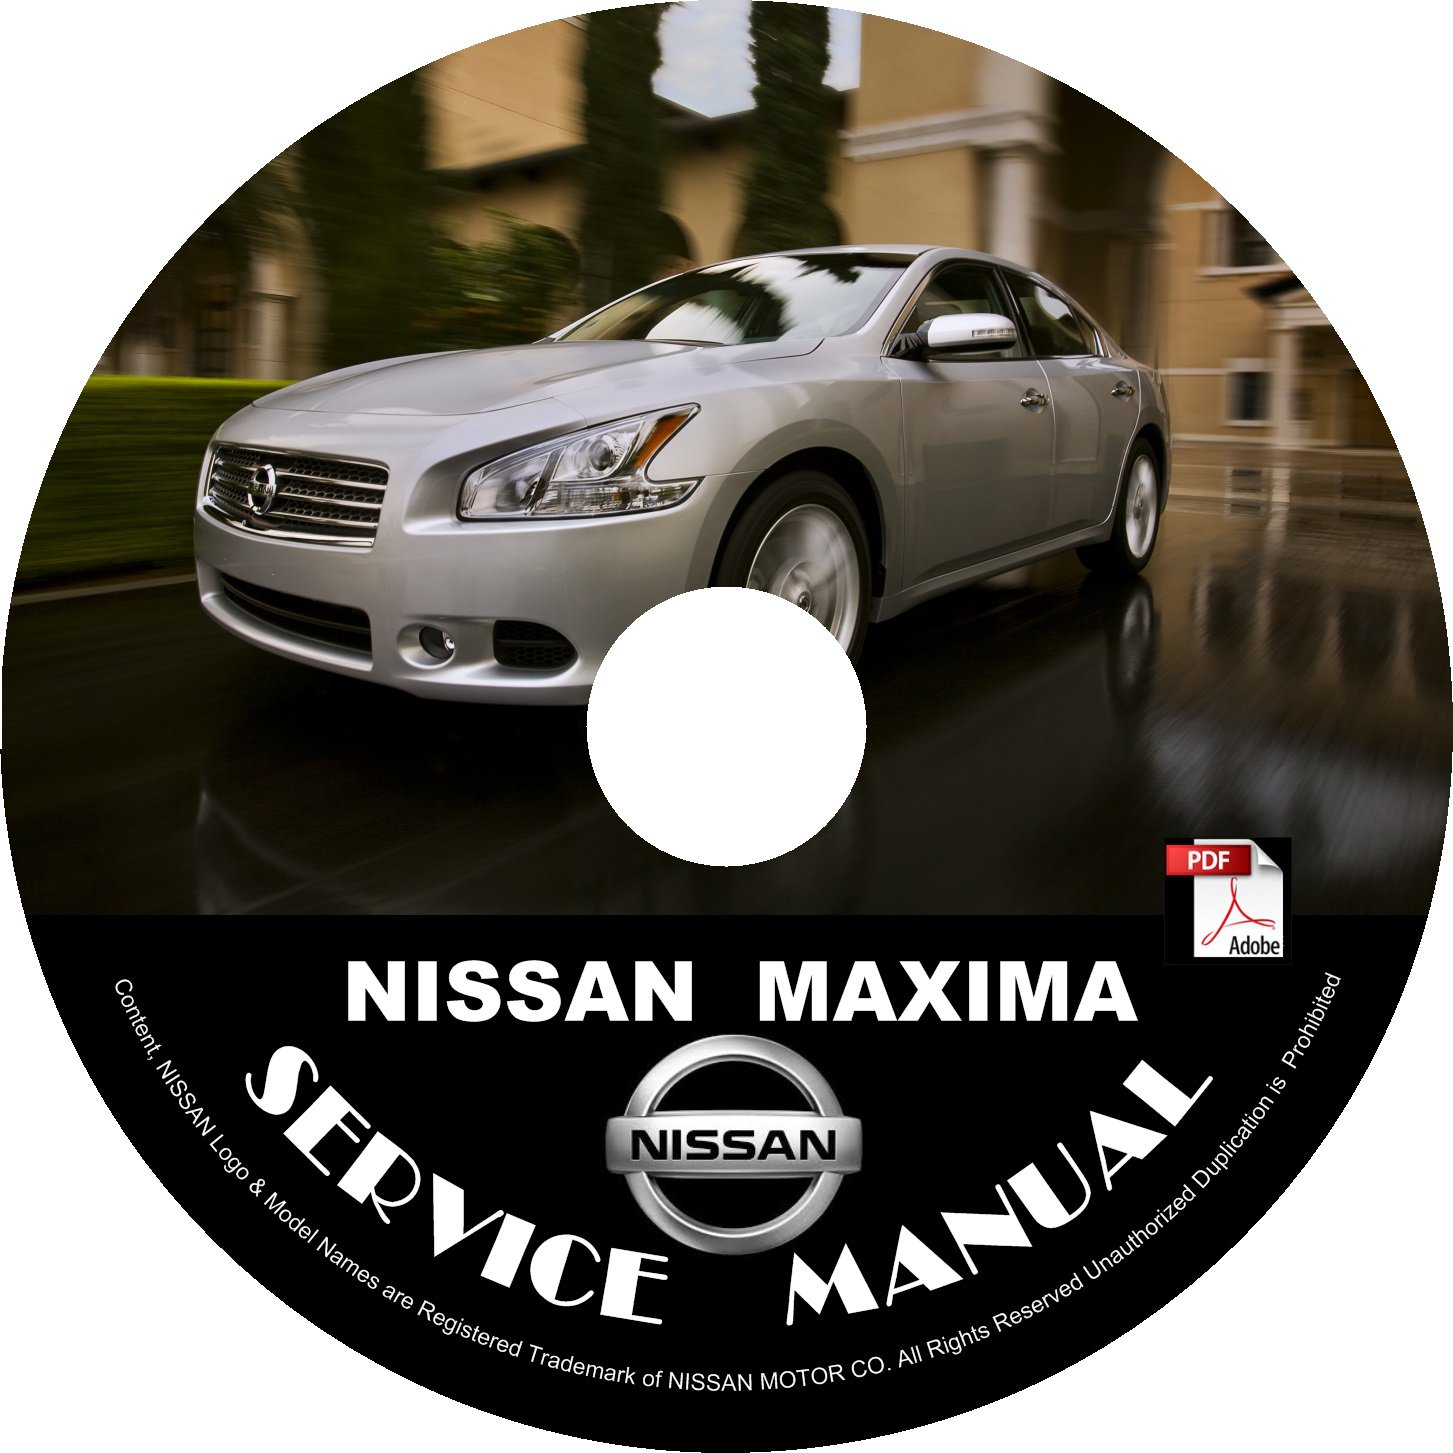 2012 Nissan Maxima Service Repair Shop Manual on CD Fix Repair Rebuild '12 Workshop Guide